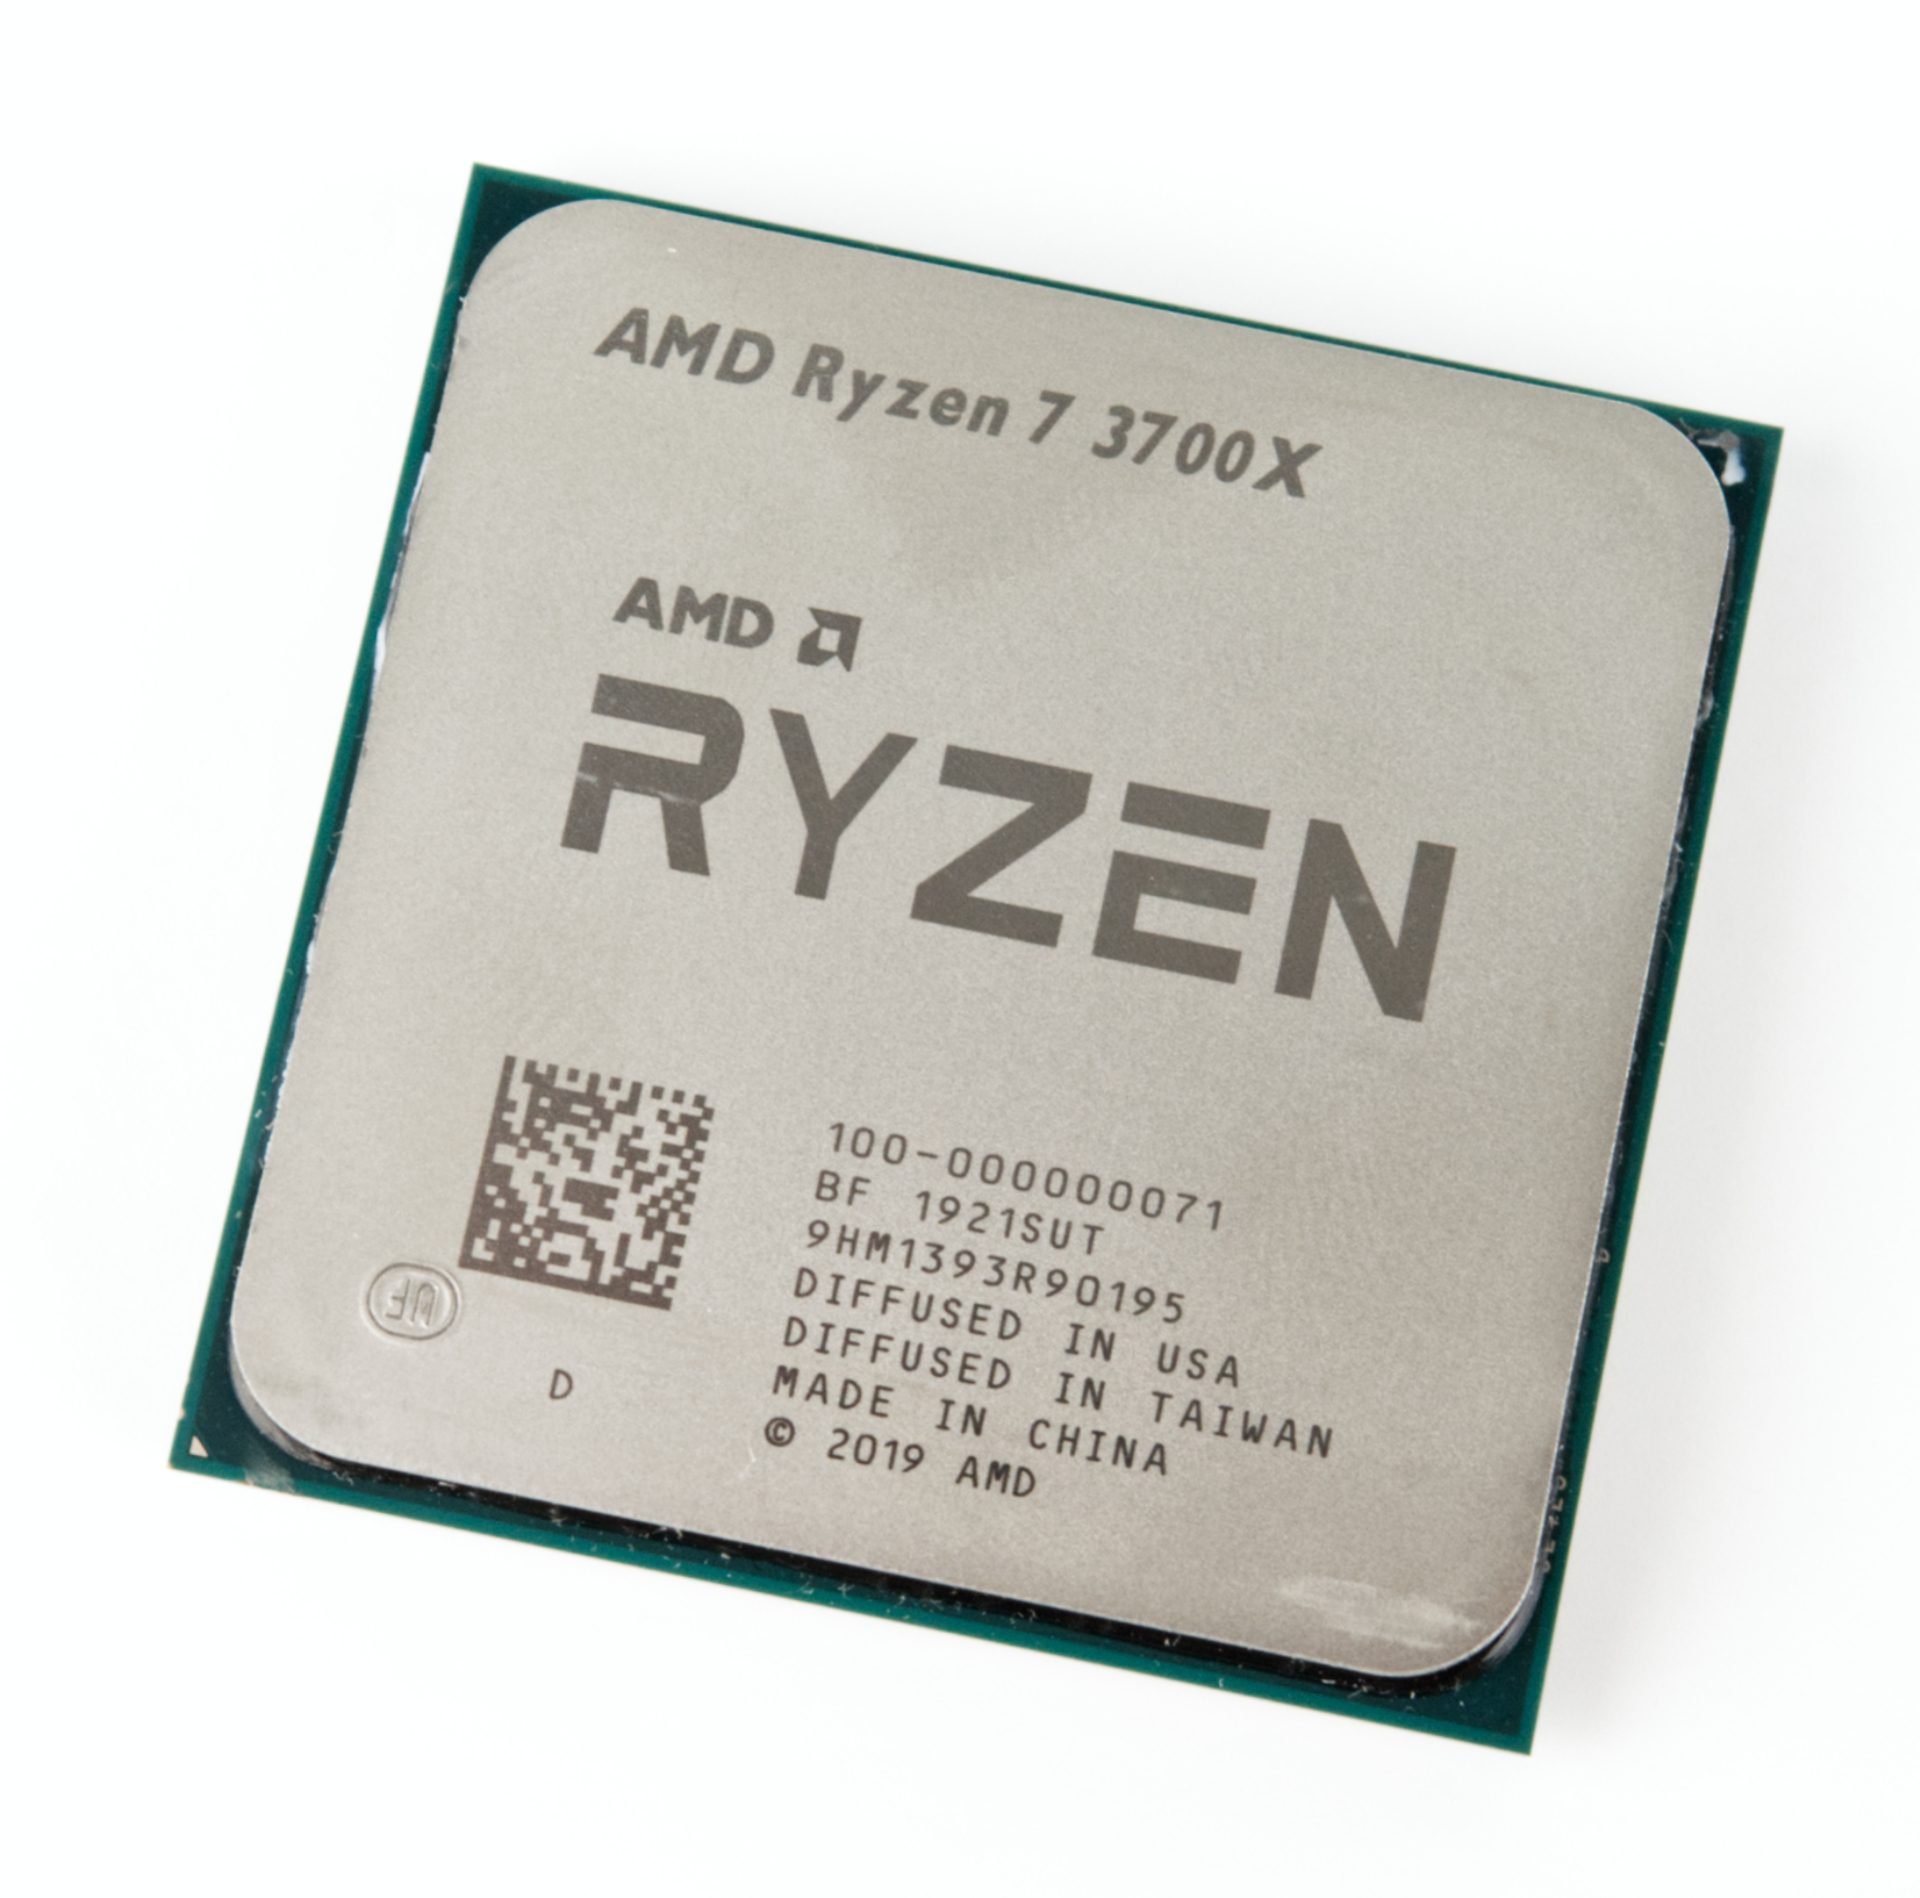 Amd Ryzen 7 3700x Desktop Cpu Review A Frugal 8 Core And 16 Thread Processor Notebookcheck Net Reviews